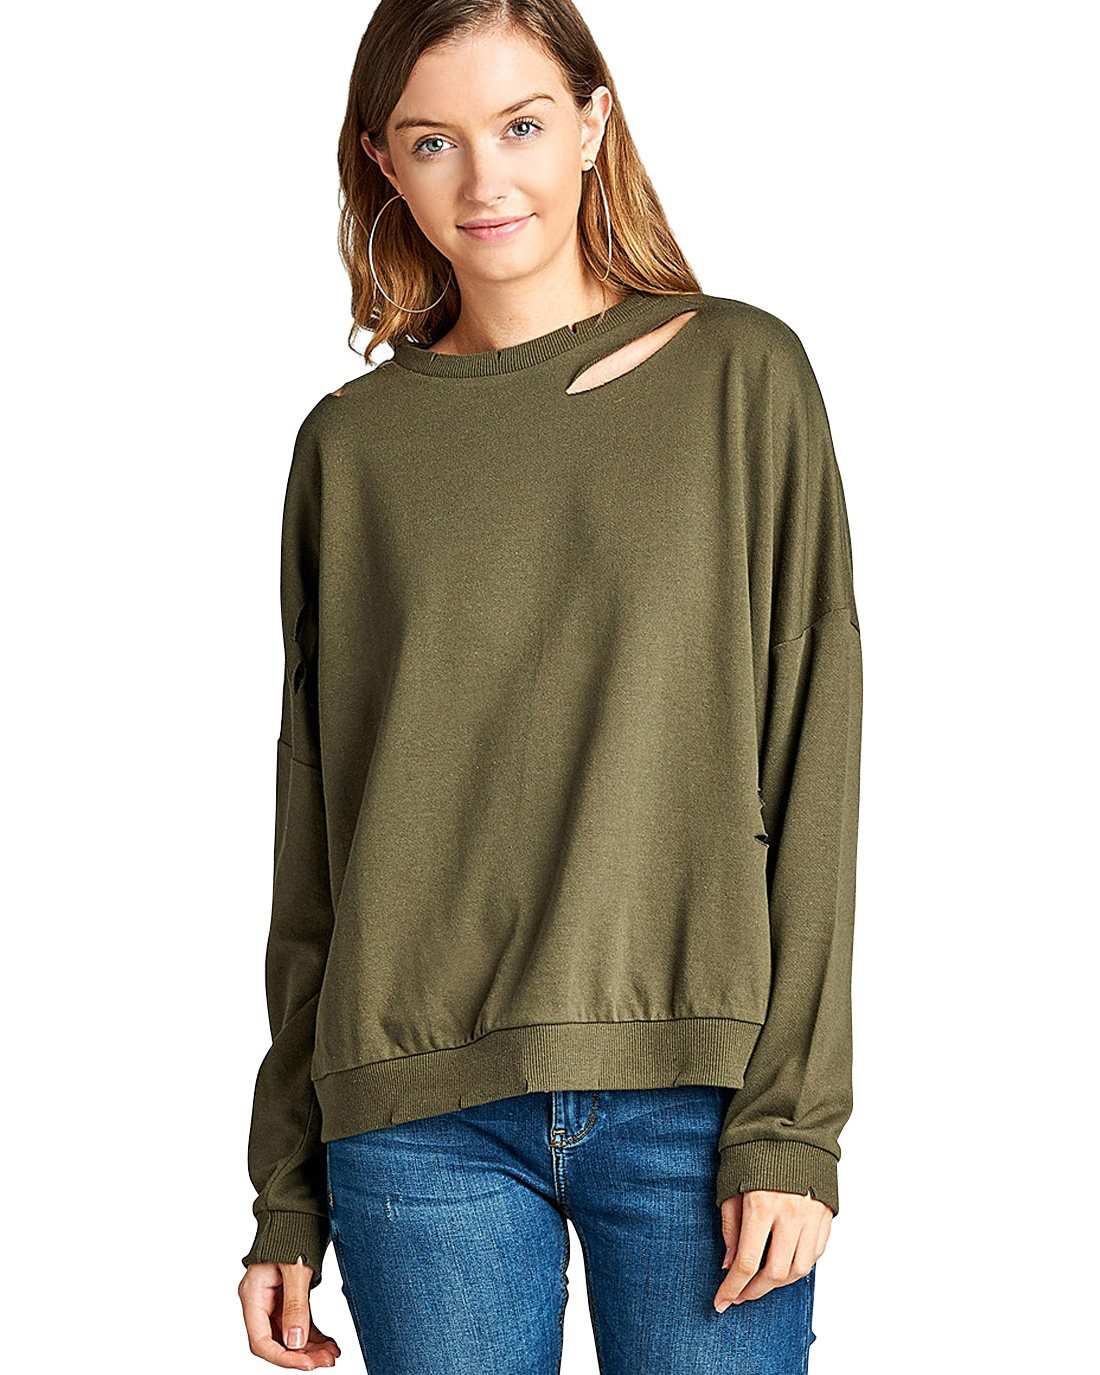 Dropped shoulders distressed cutout design sweatshirt-S-MY UPSCALE STORE